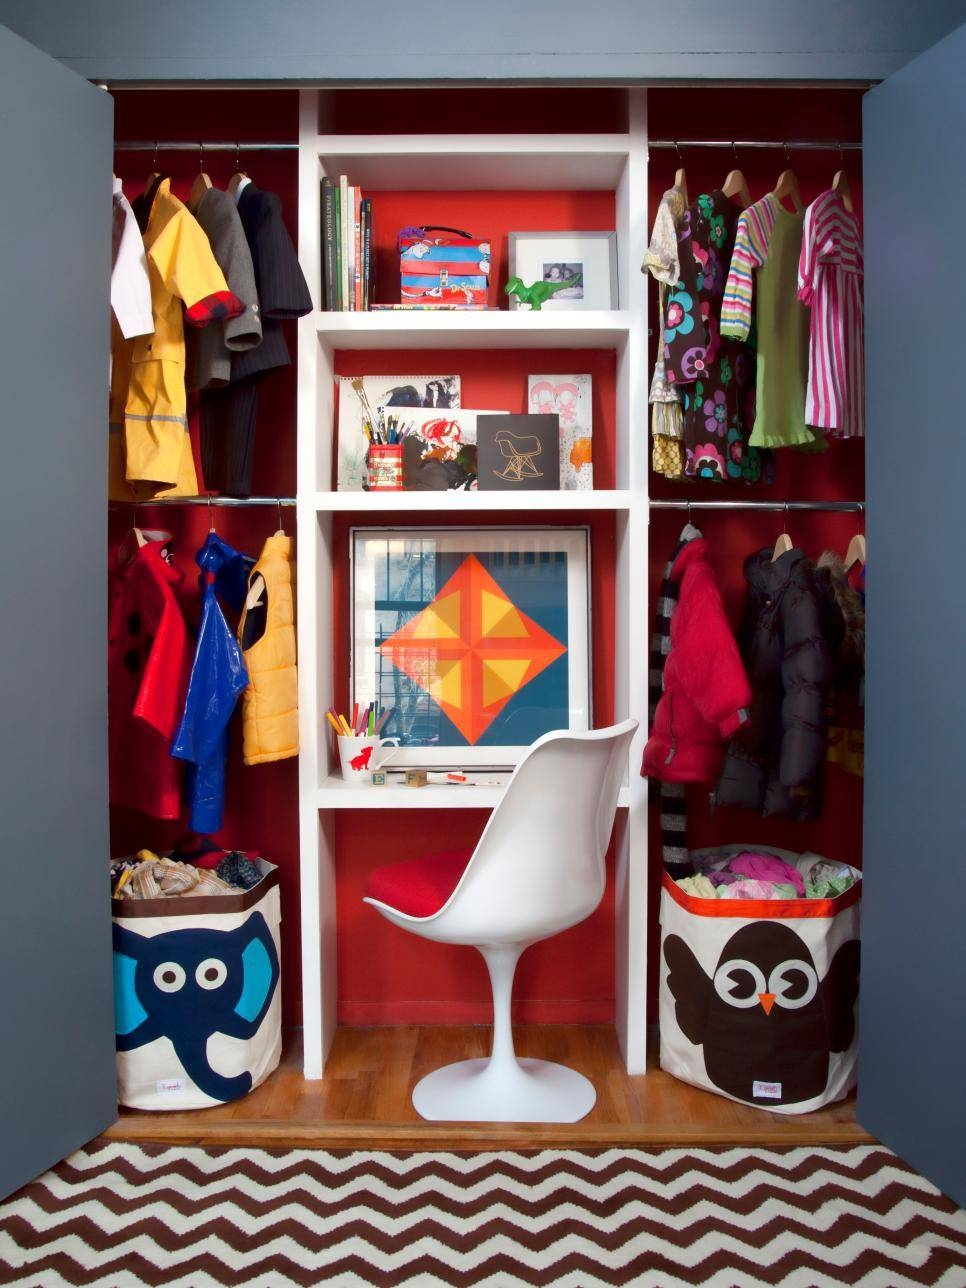 Organizing & Storage Tips For The Pint Size Set | Hgtv In Childrens Double Rail Wardrobes (View 28 of 30)